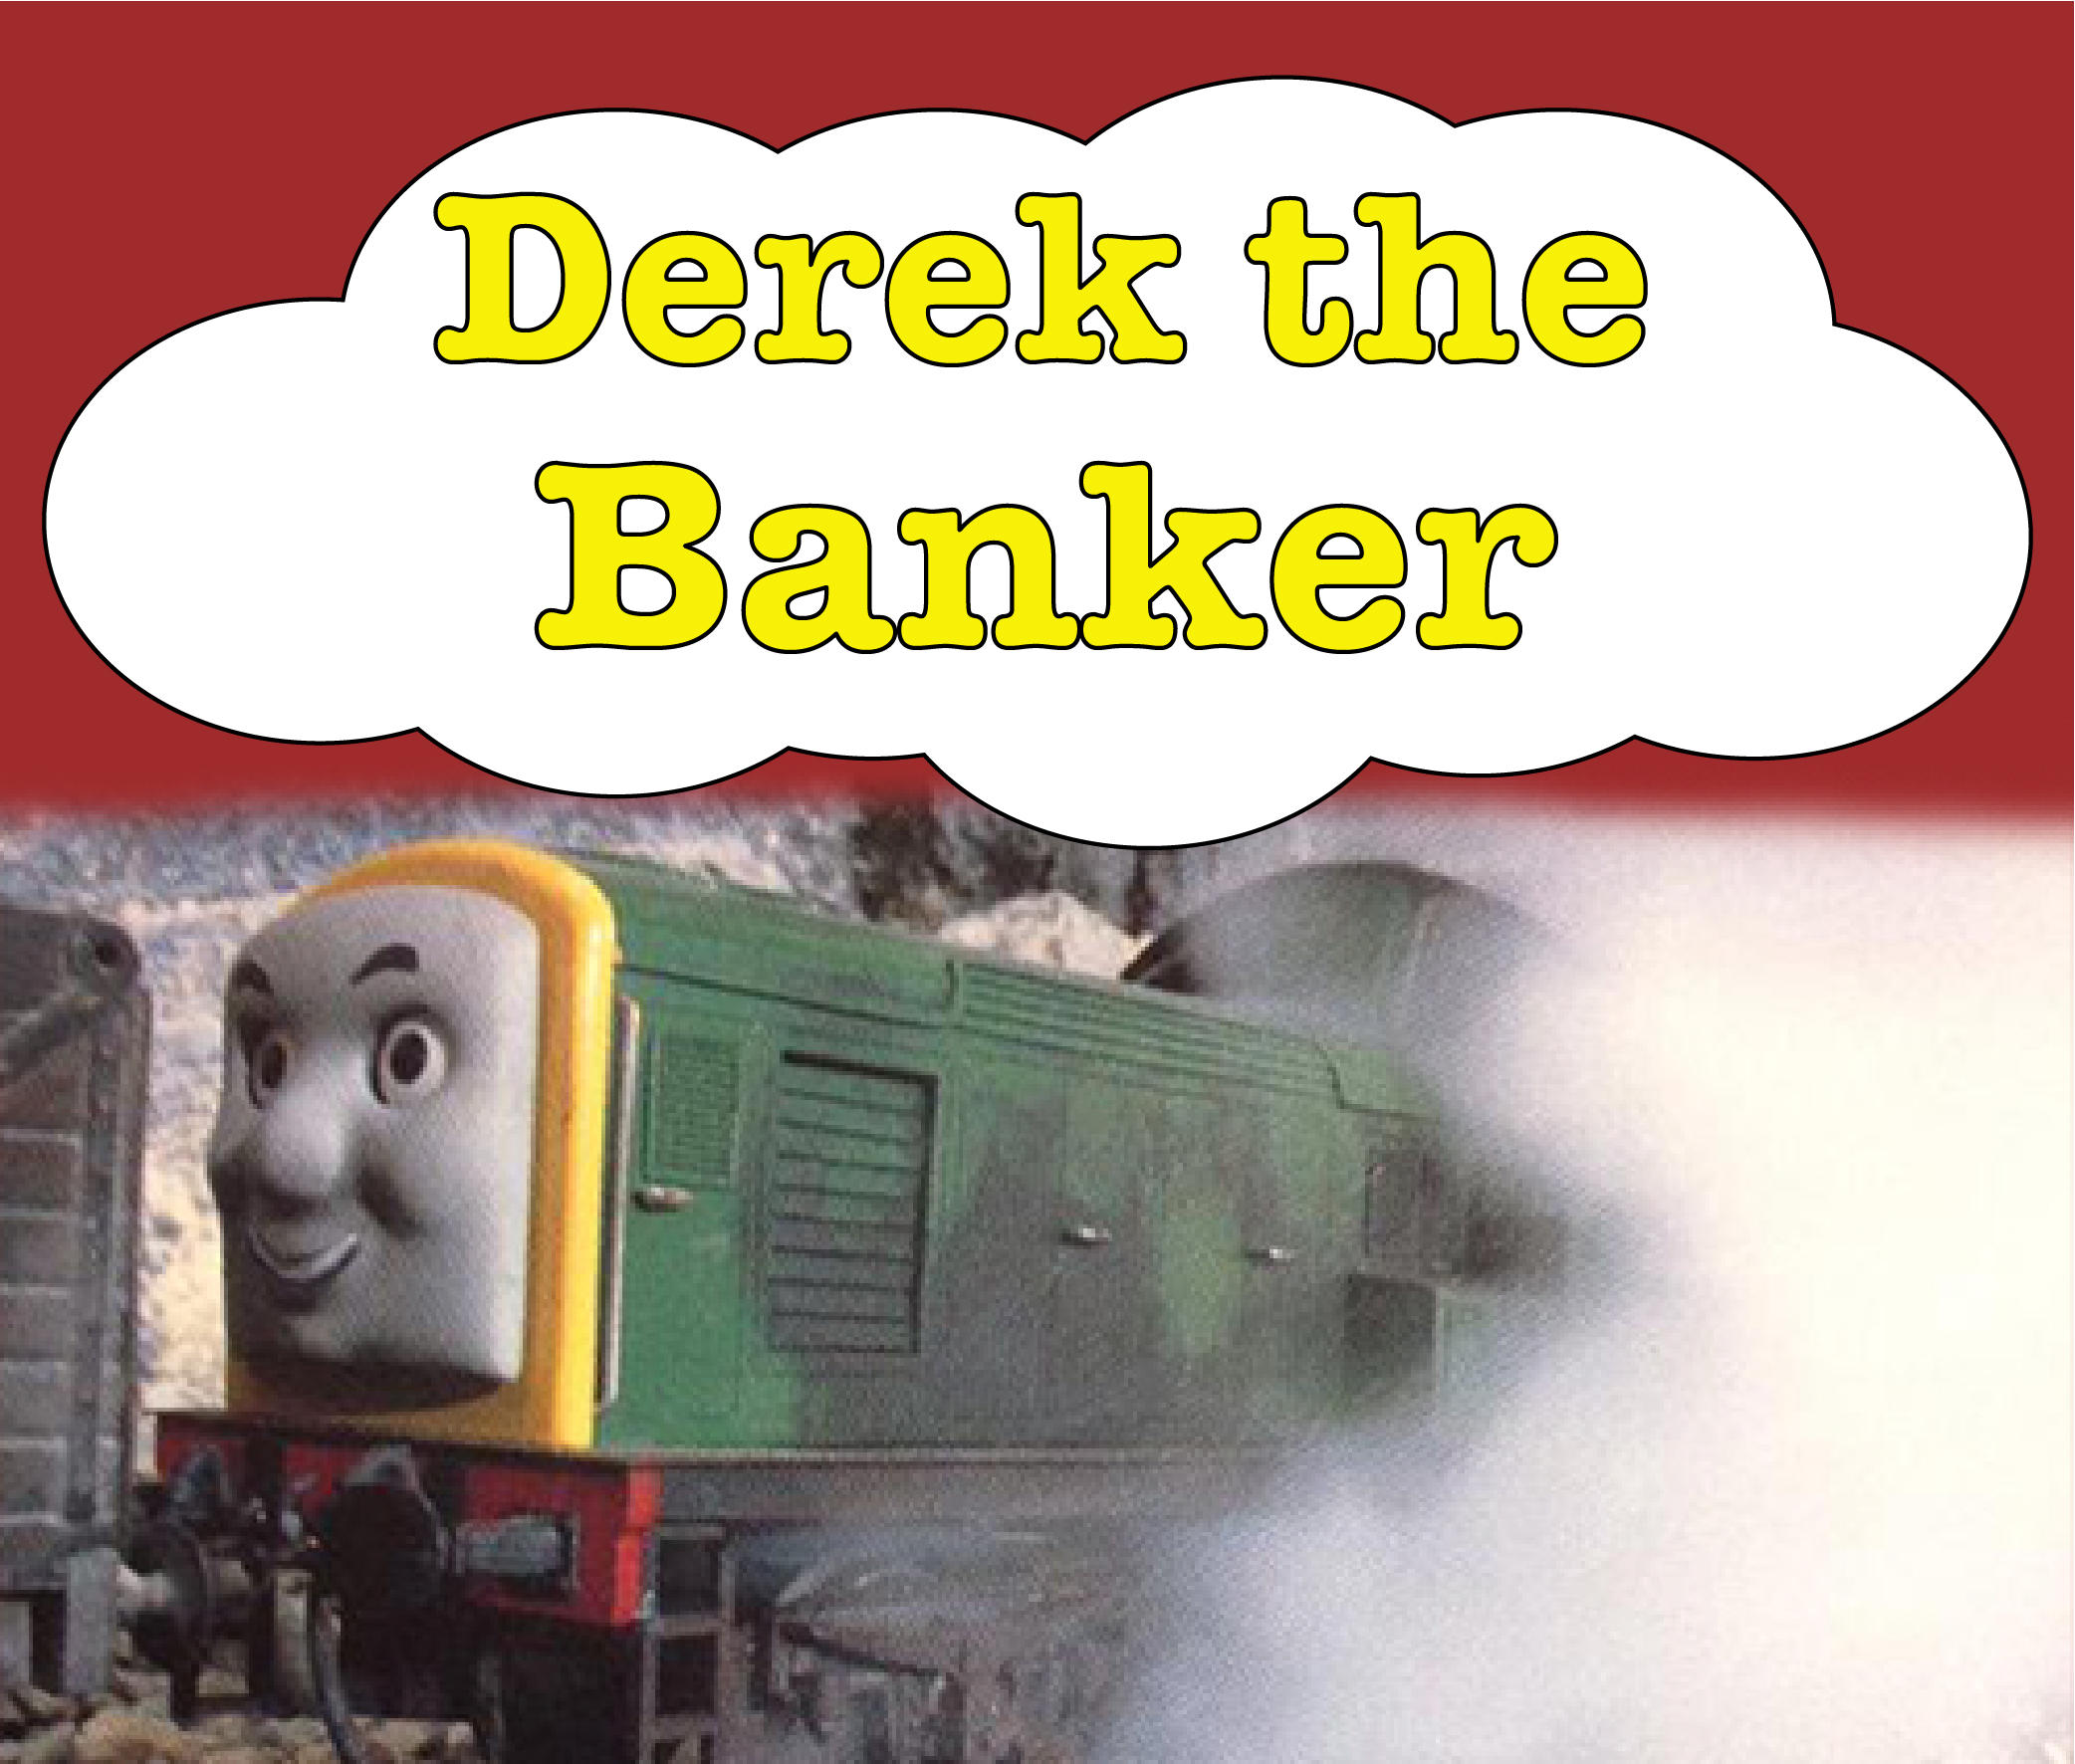 Fanfiction and stories on Sodor-Dieselworks - DeviantArt